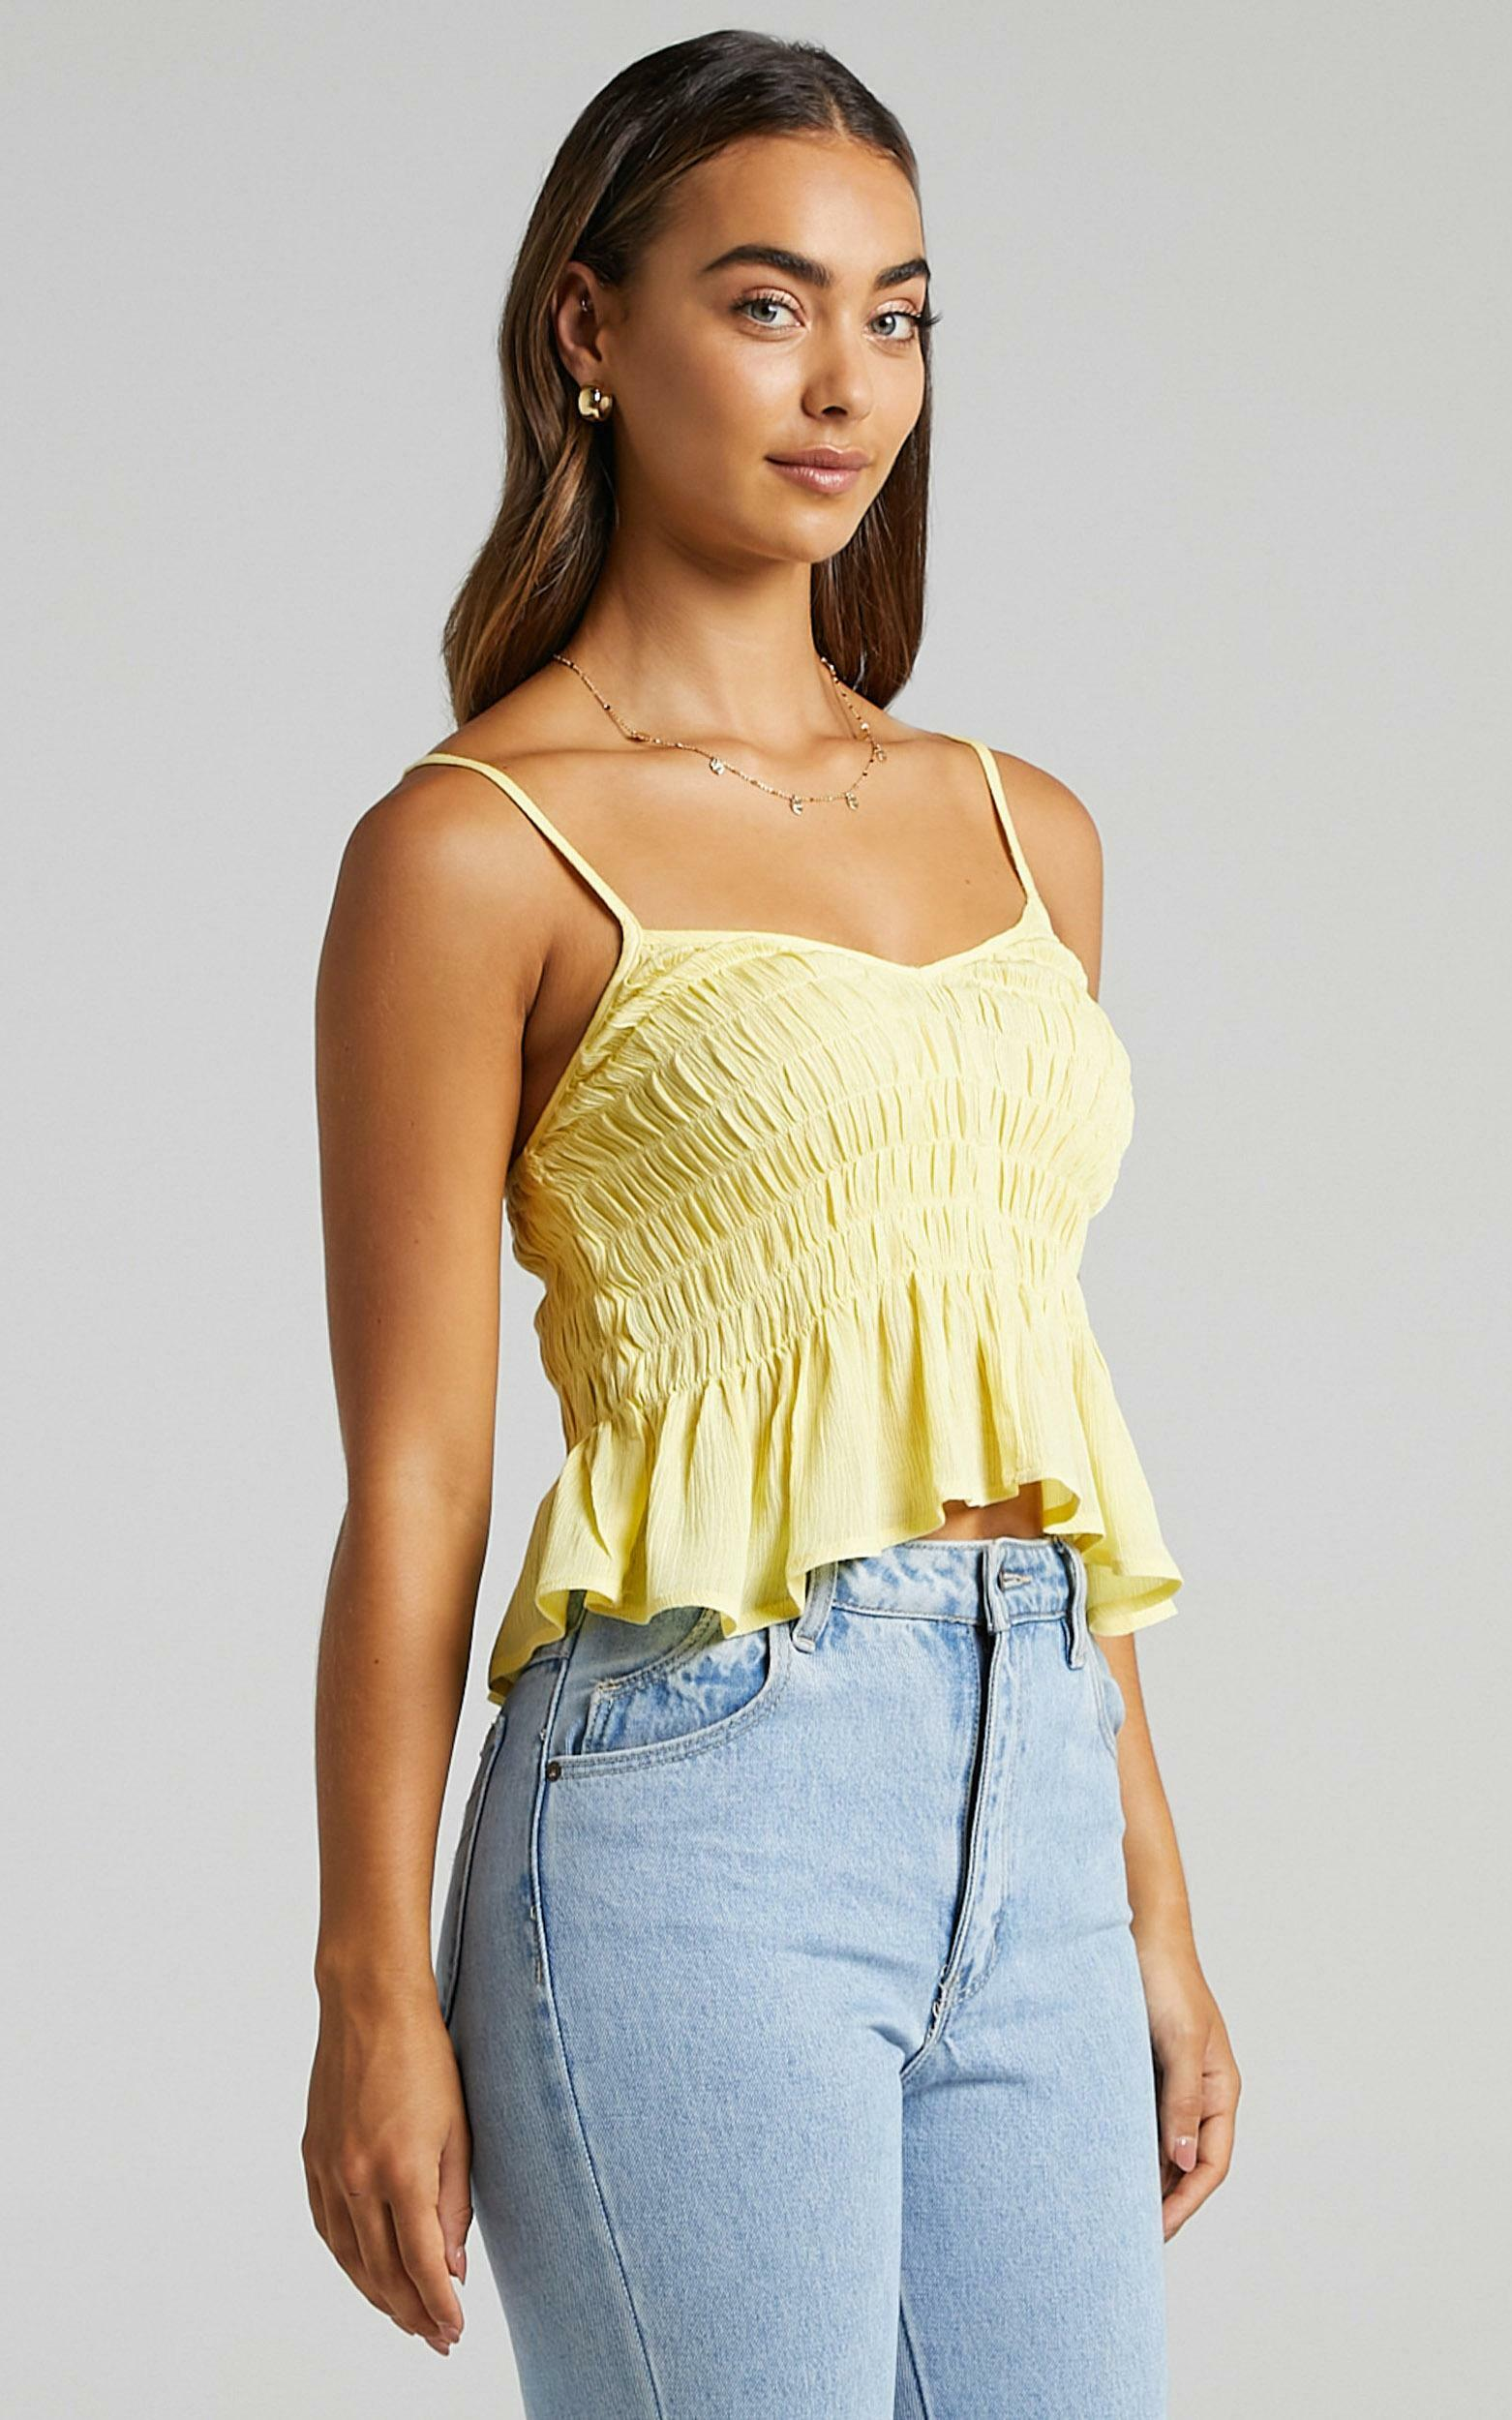 Bellona Top in Lemon - 6 (XS), Yellow, hi-res image number null